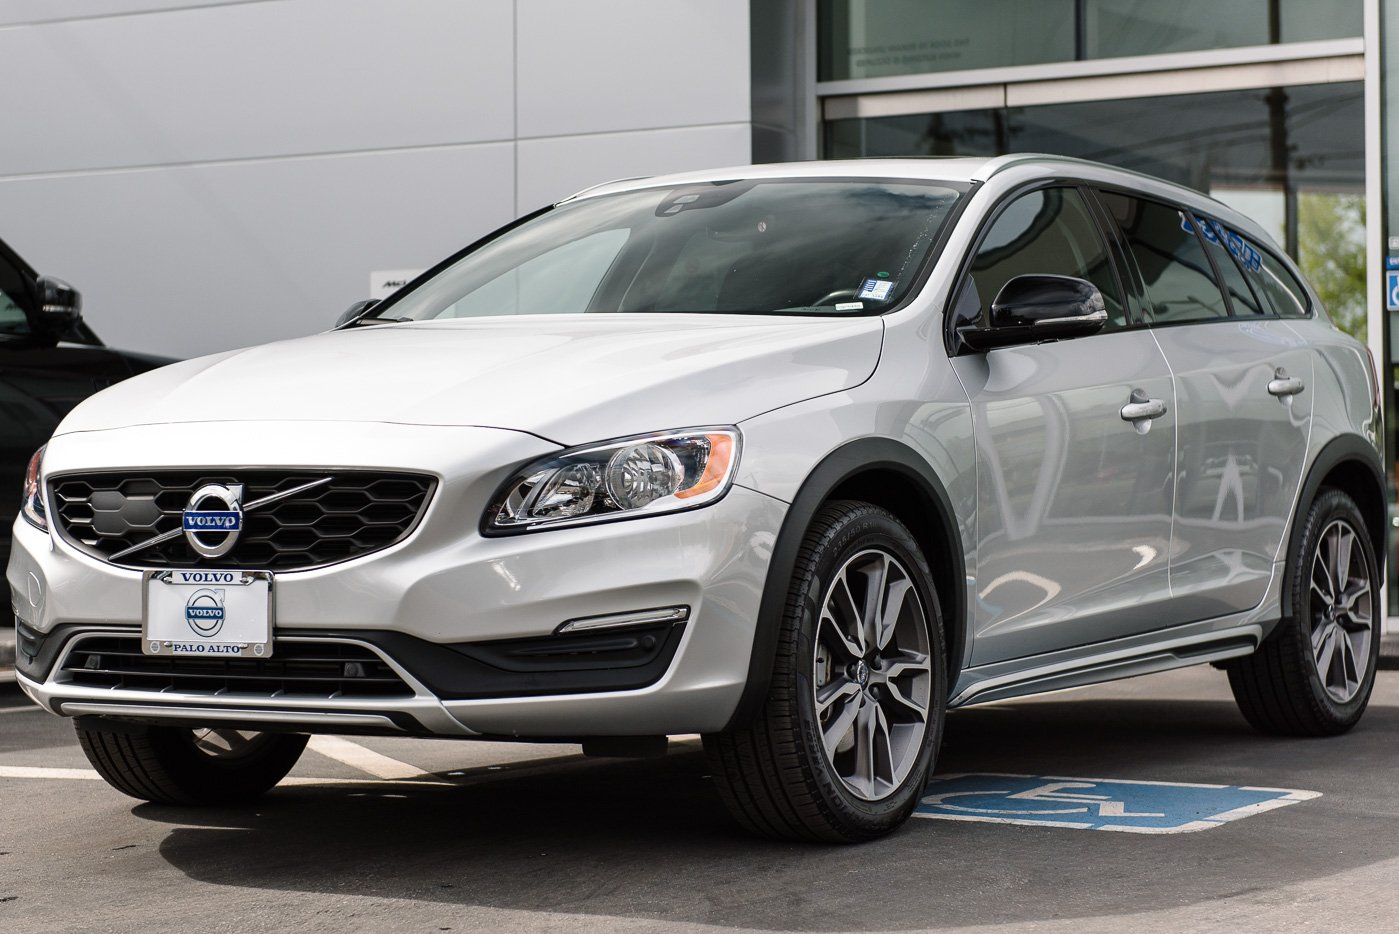 Used 2018 Volvo V60 Cross Country T5 AWD Wagon for Sale in Palo Alto, CA